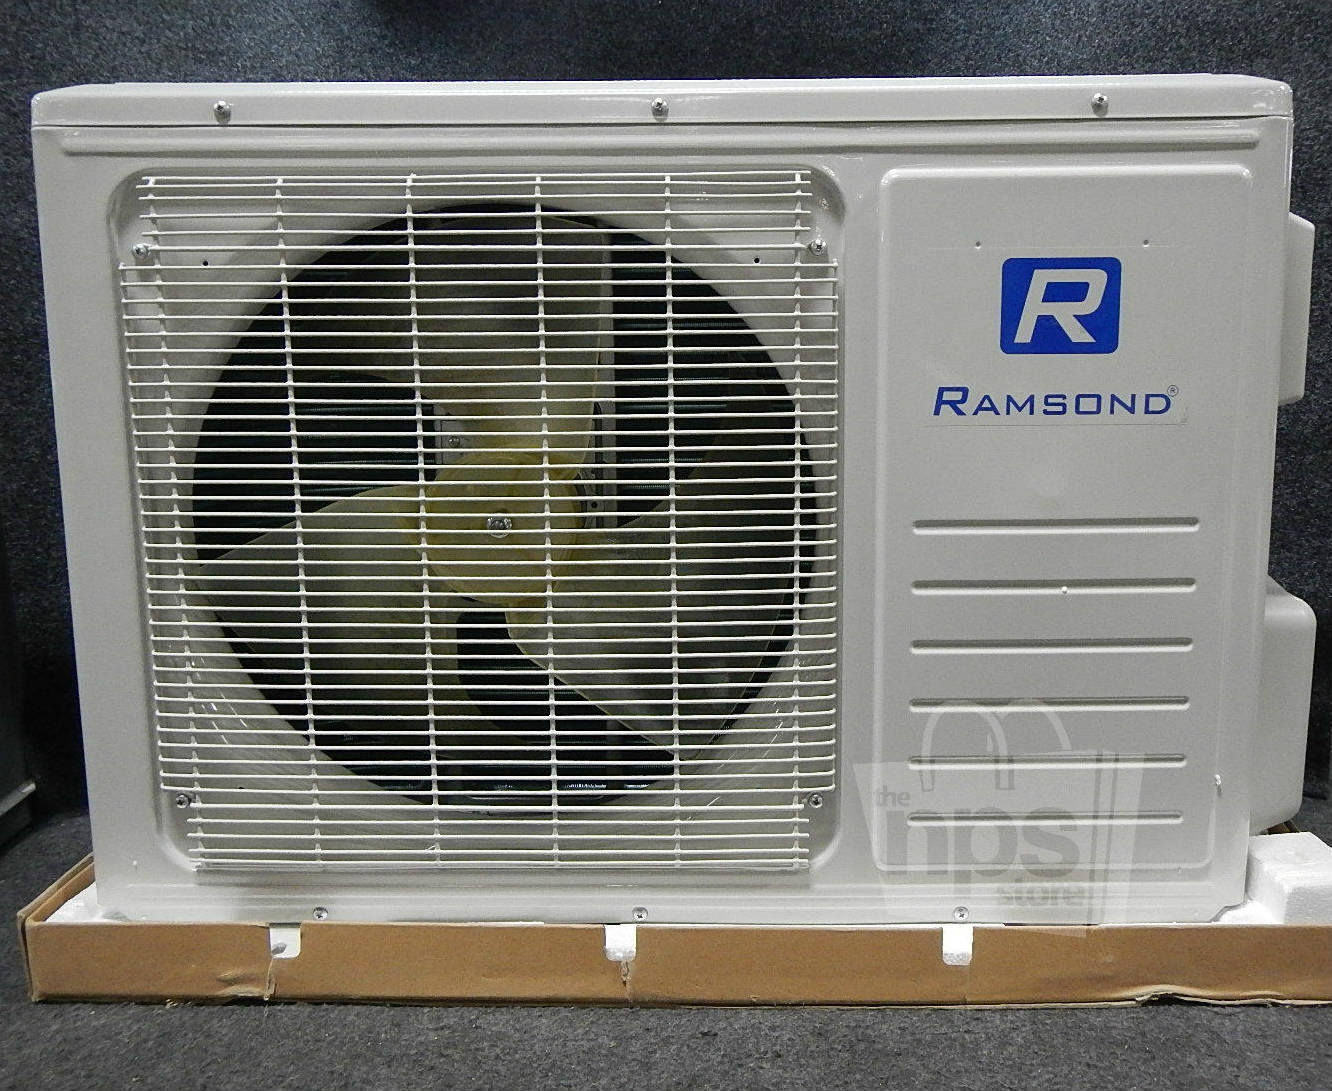 Ramsond 37GWX220V Split Type Air Conditioner Outdoor Unit 12 500BTU  #32416B